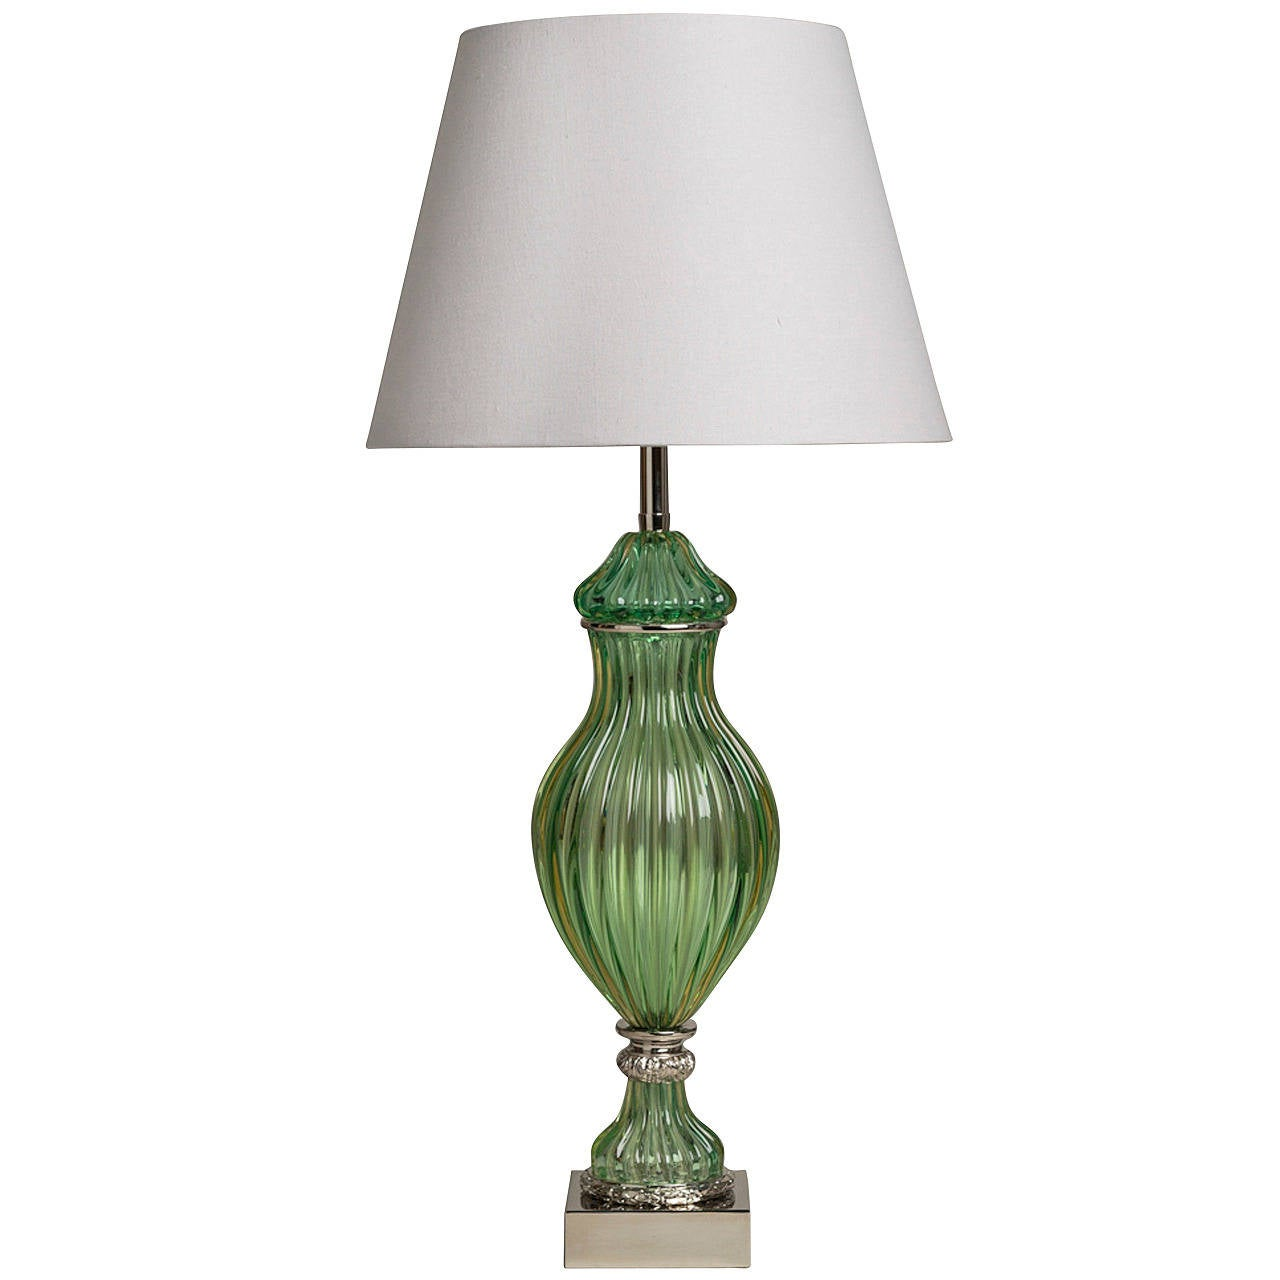 Superb Seguso for Marbro Murano Green Glass Lamp, 1950s